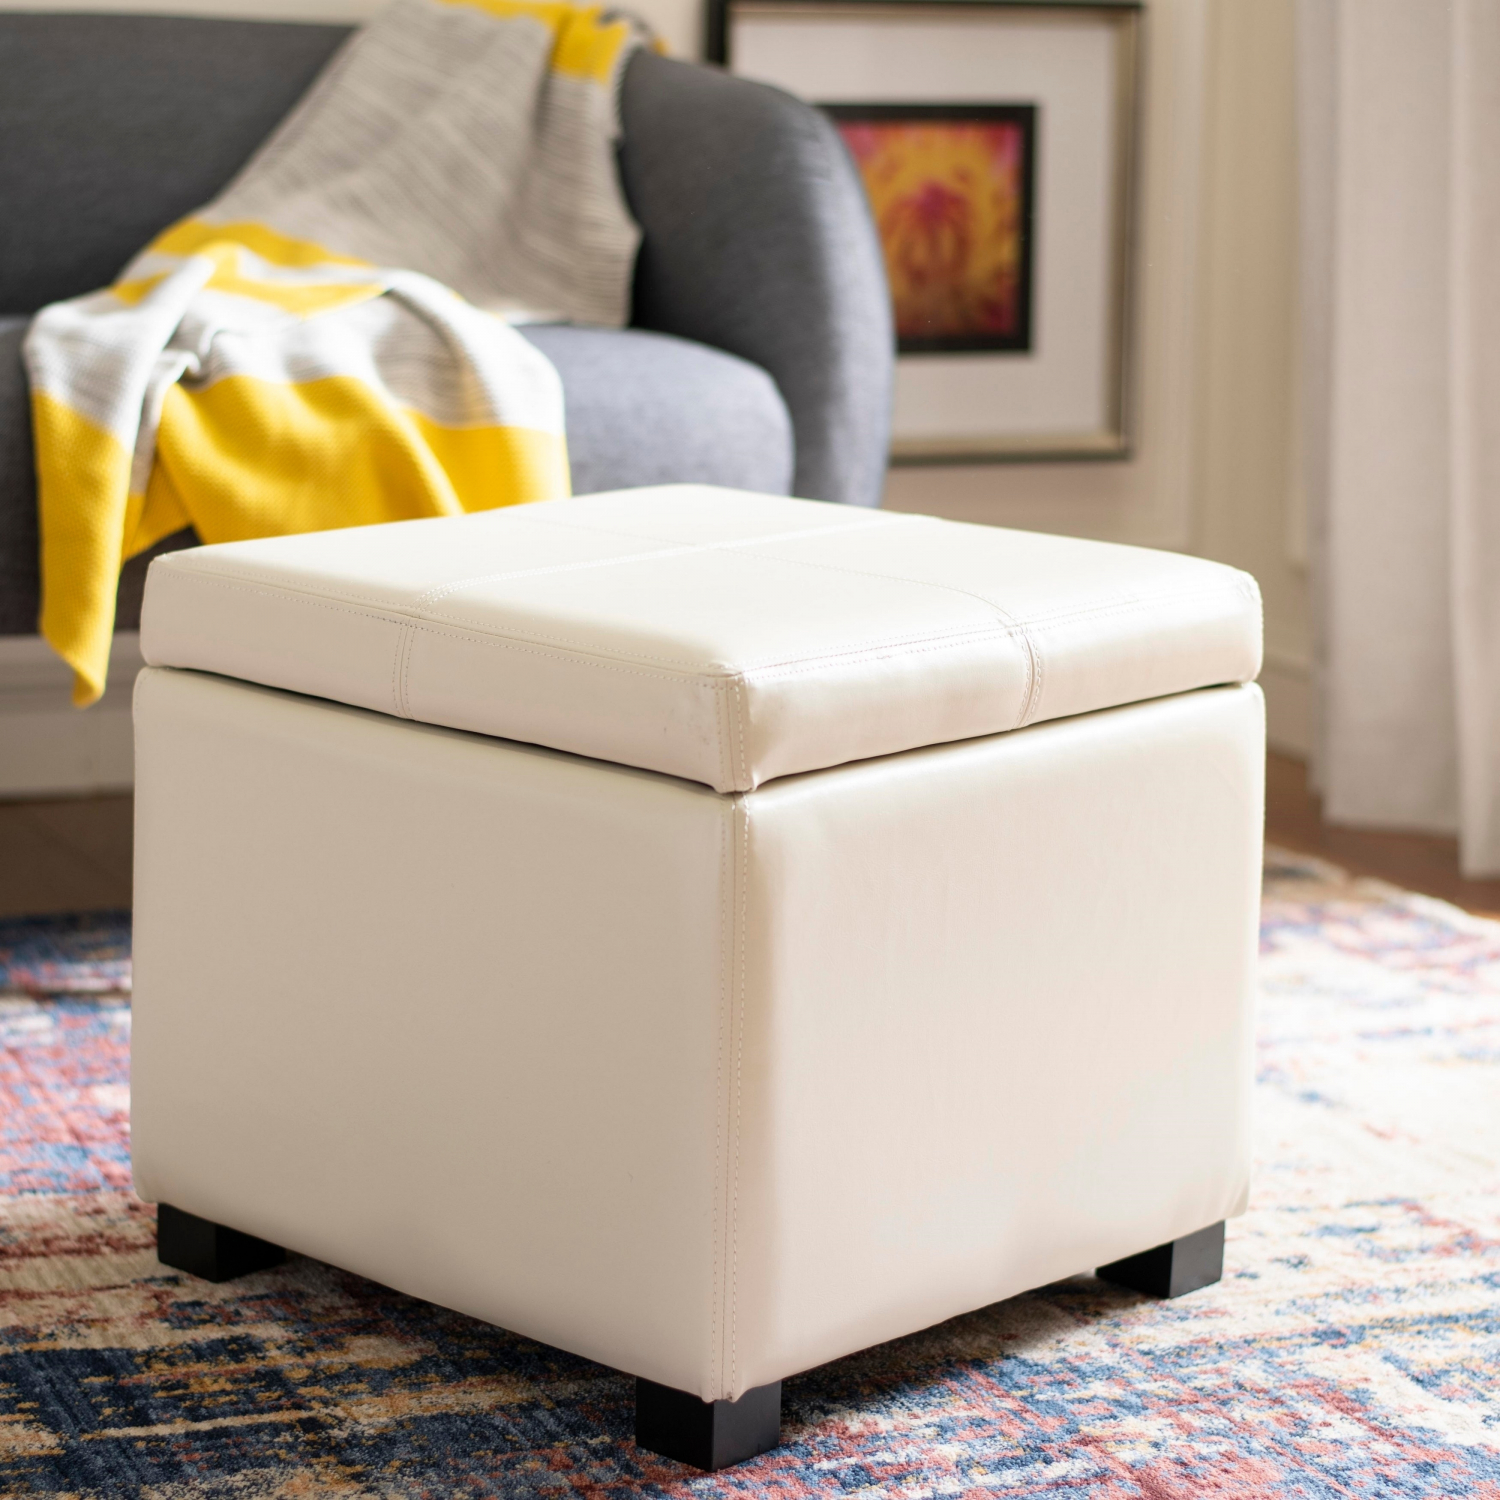 Enjoyable Details About Safavieh Broadway Cream Leather Storage Ottoman Creativecarmelina Interior Chair Design Creativecarmelinacom